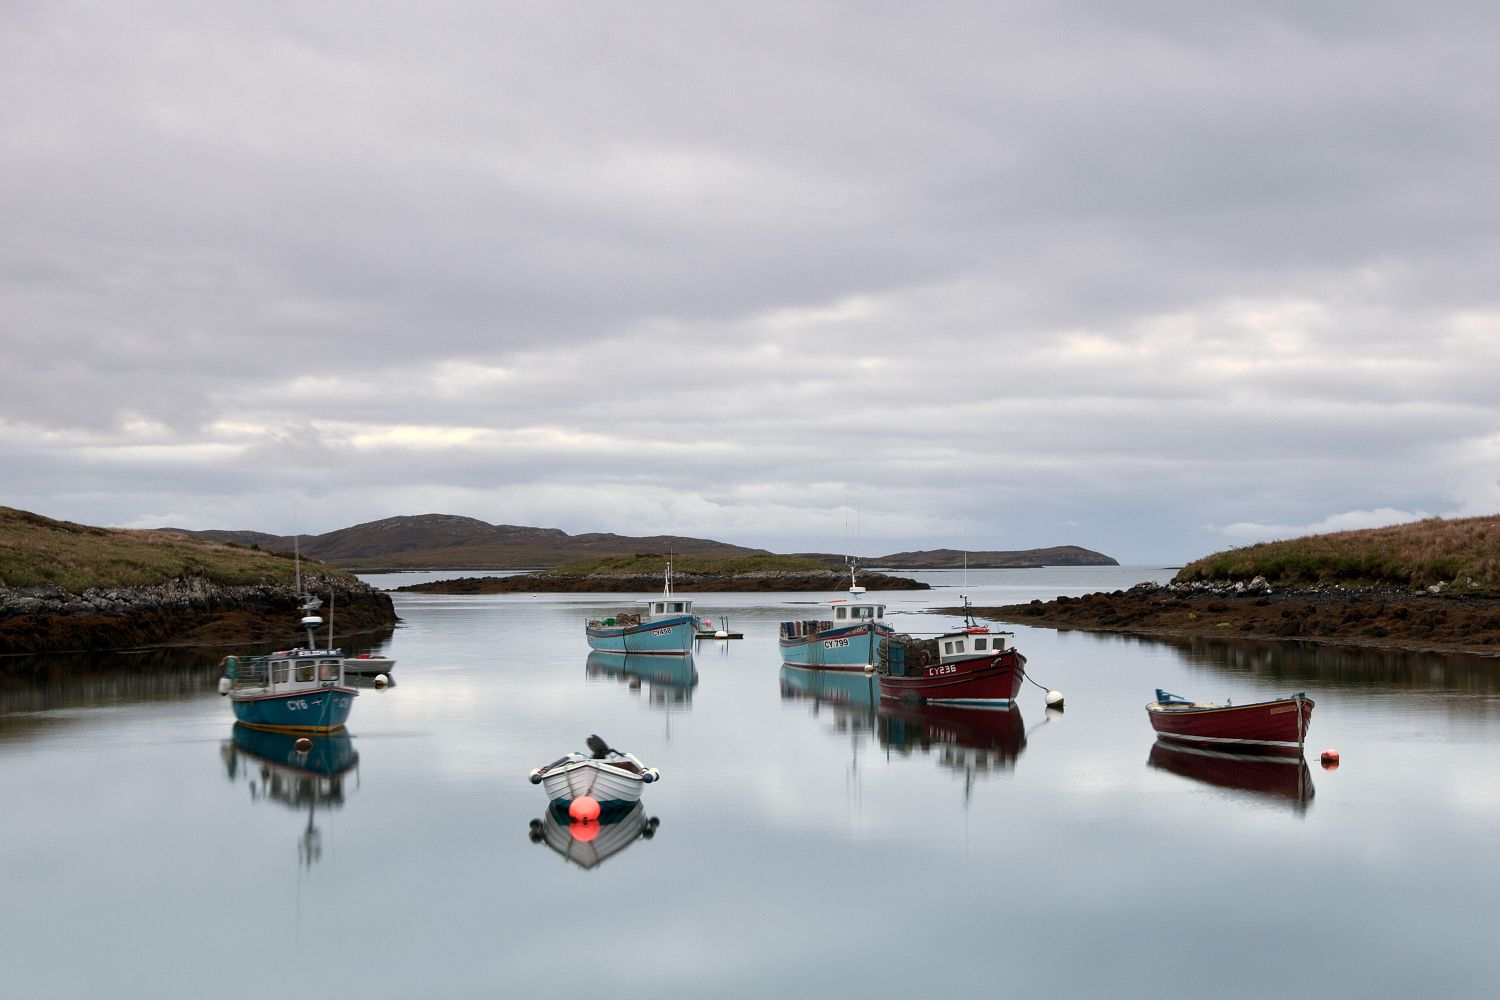 Lochmaddy on North Uist, Outer Hebrides